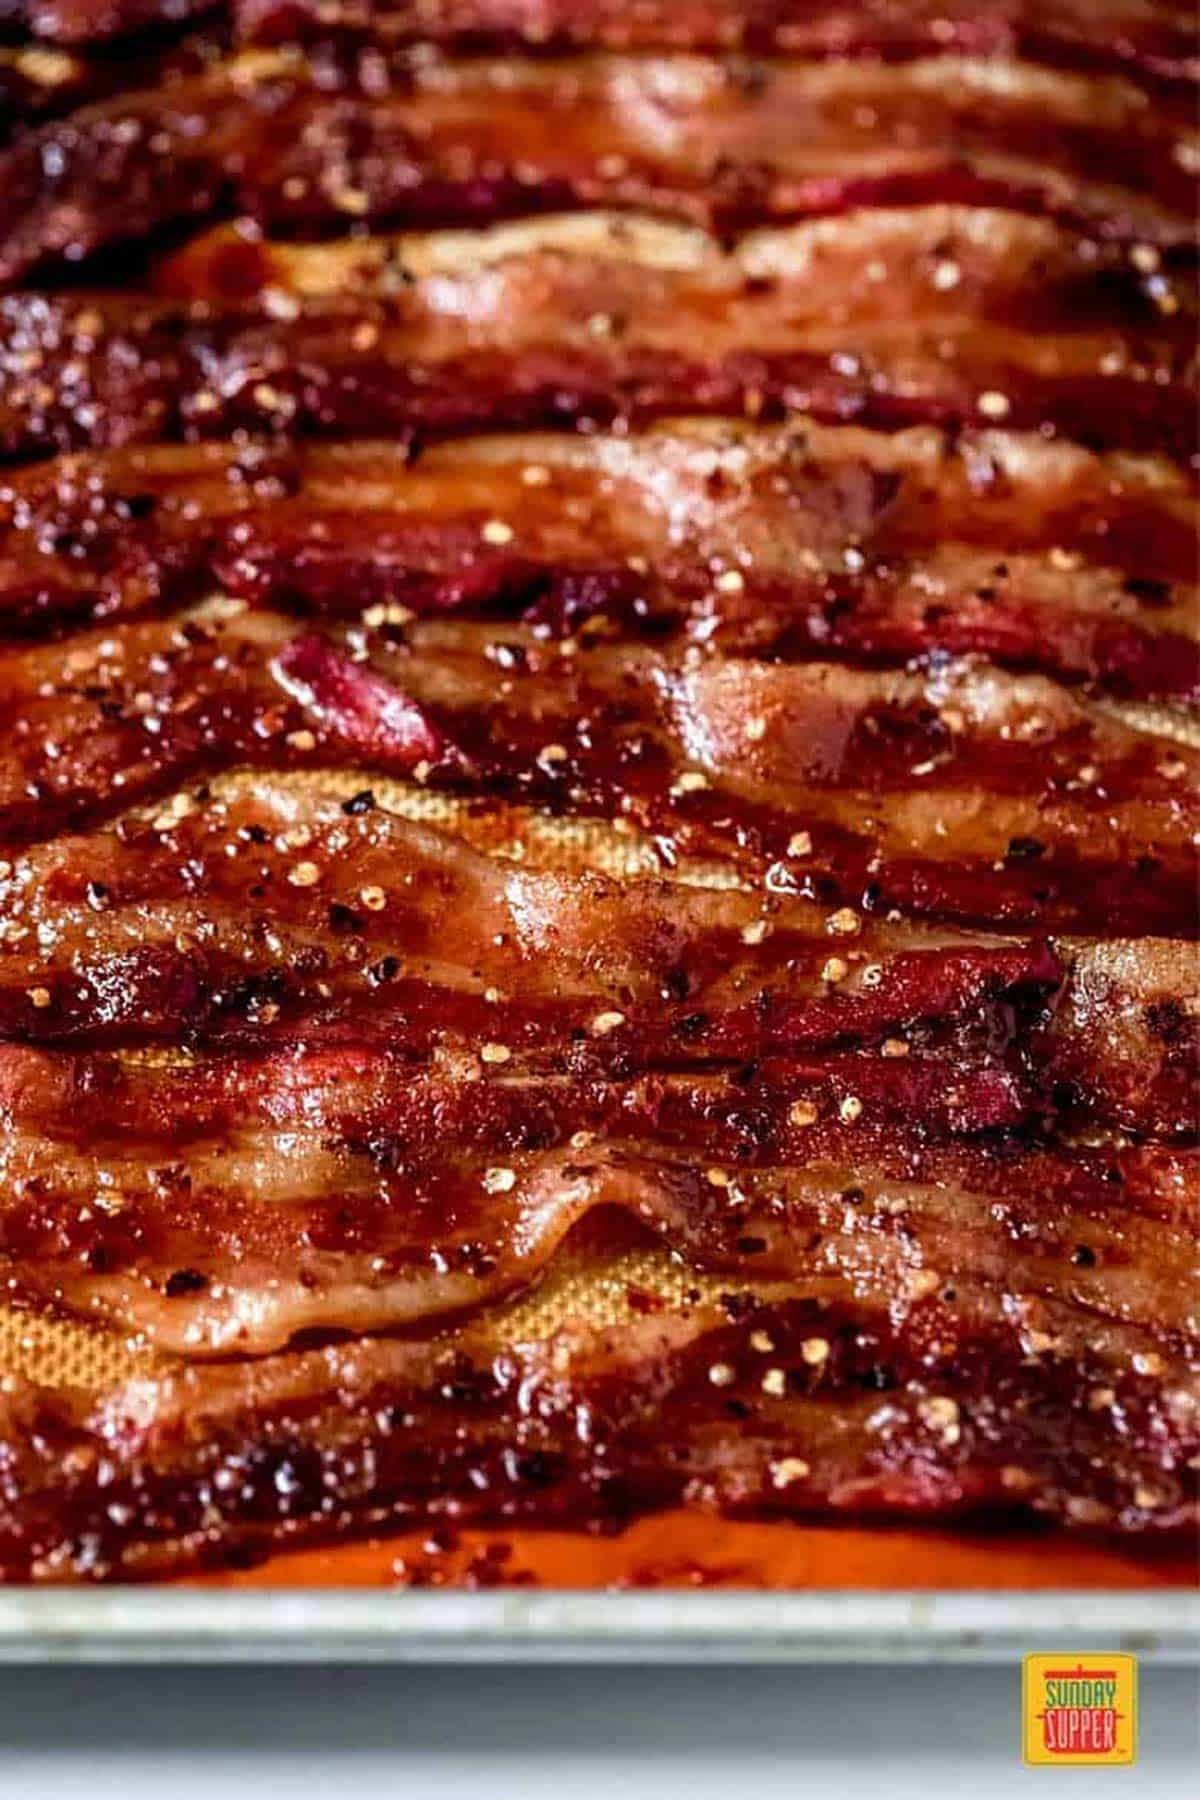 cooked candied bacon on a lined sheet pan